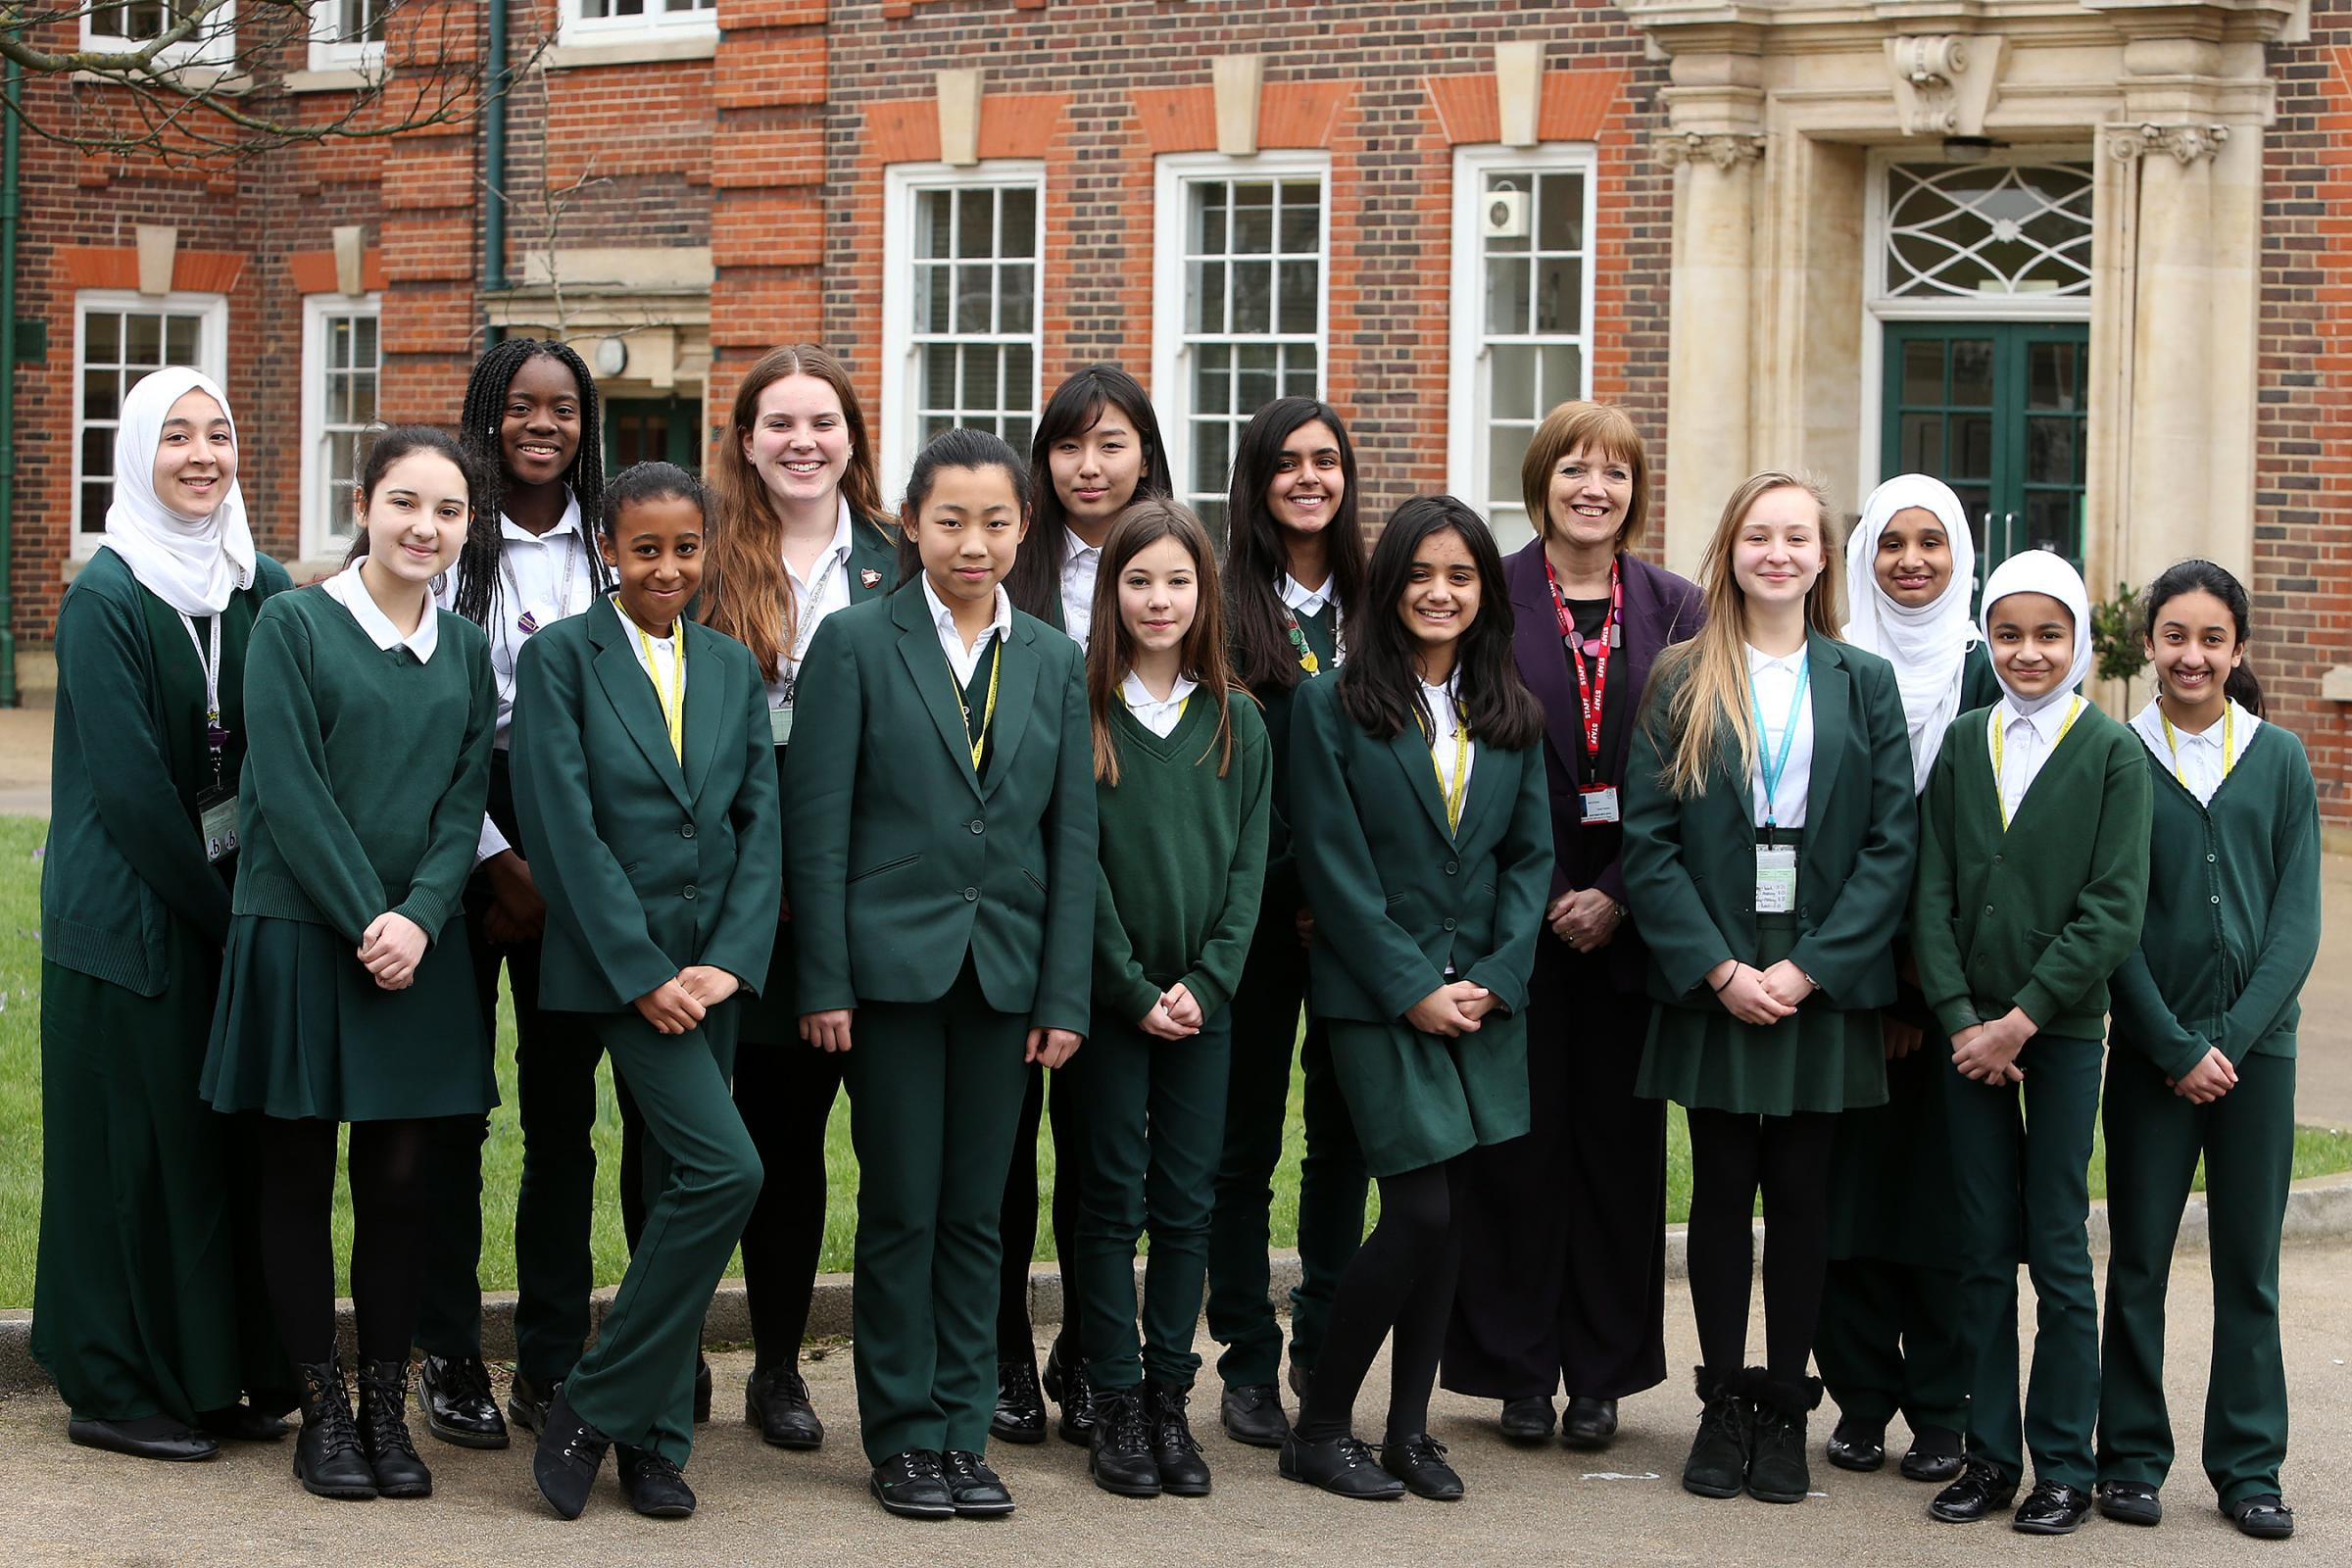 Walthamstow School for Girls alumnae and former staff hope to raise cash for the school at a quiz night on May 3.